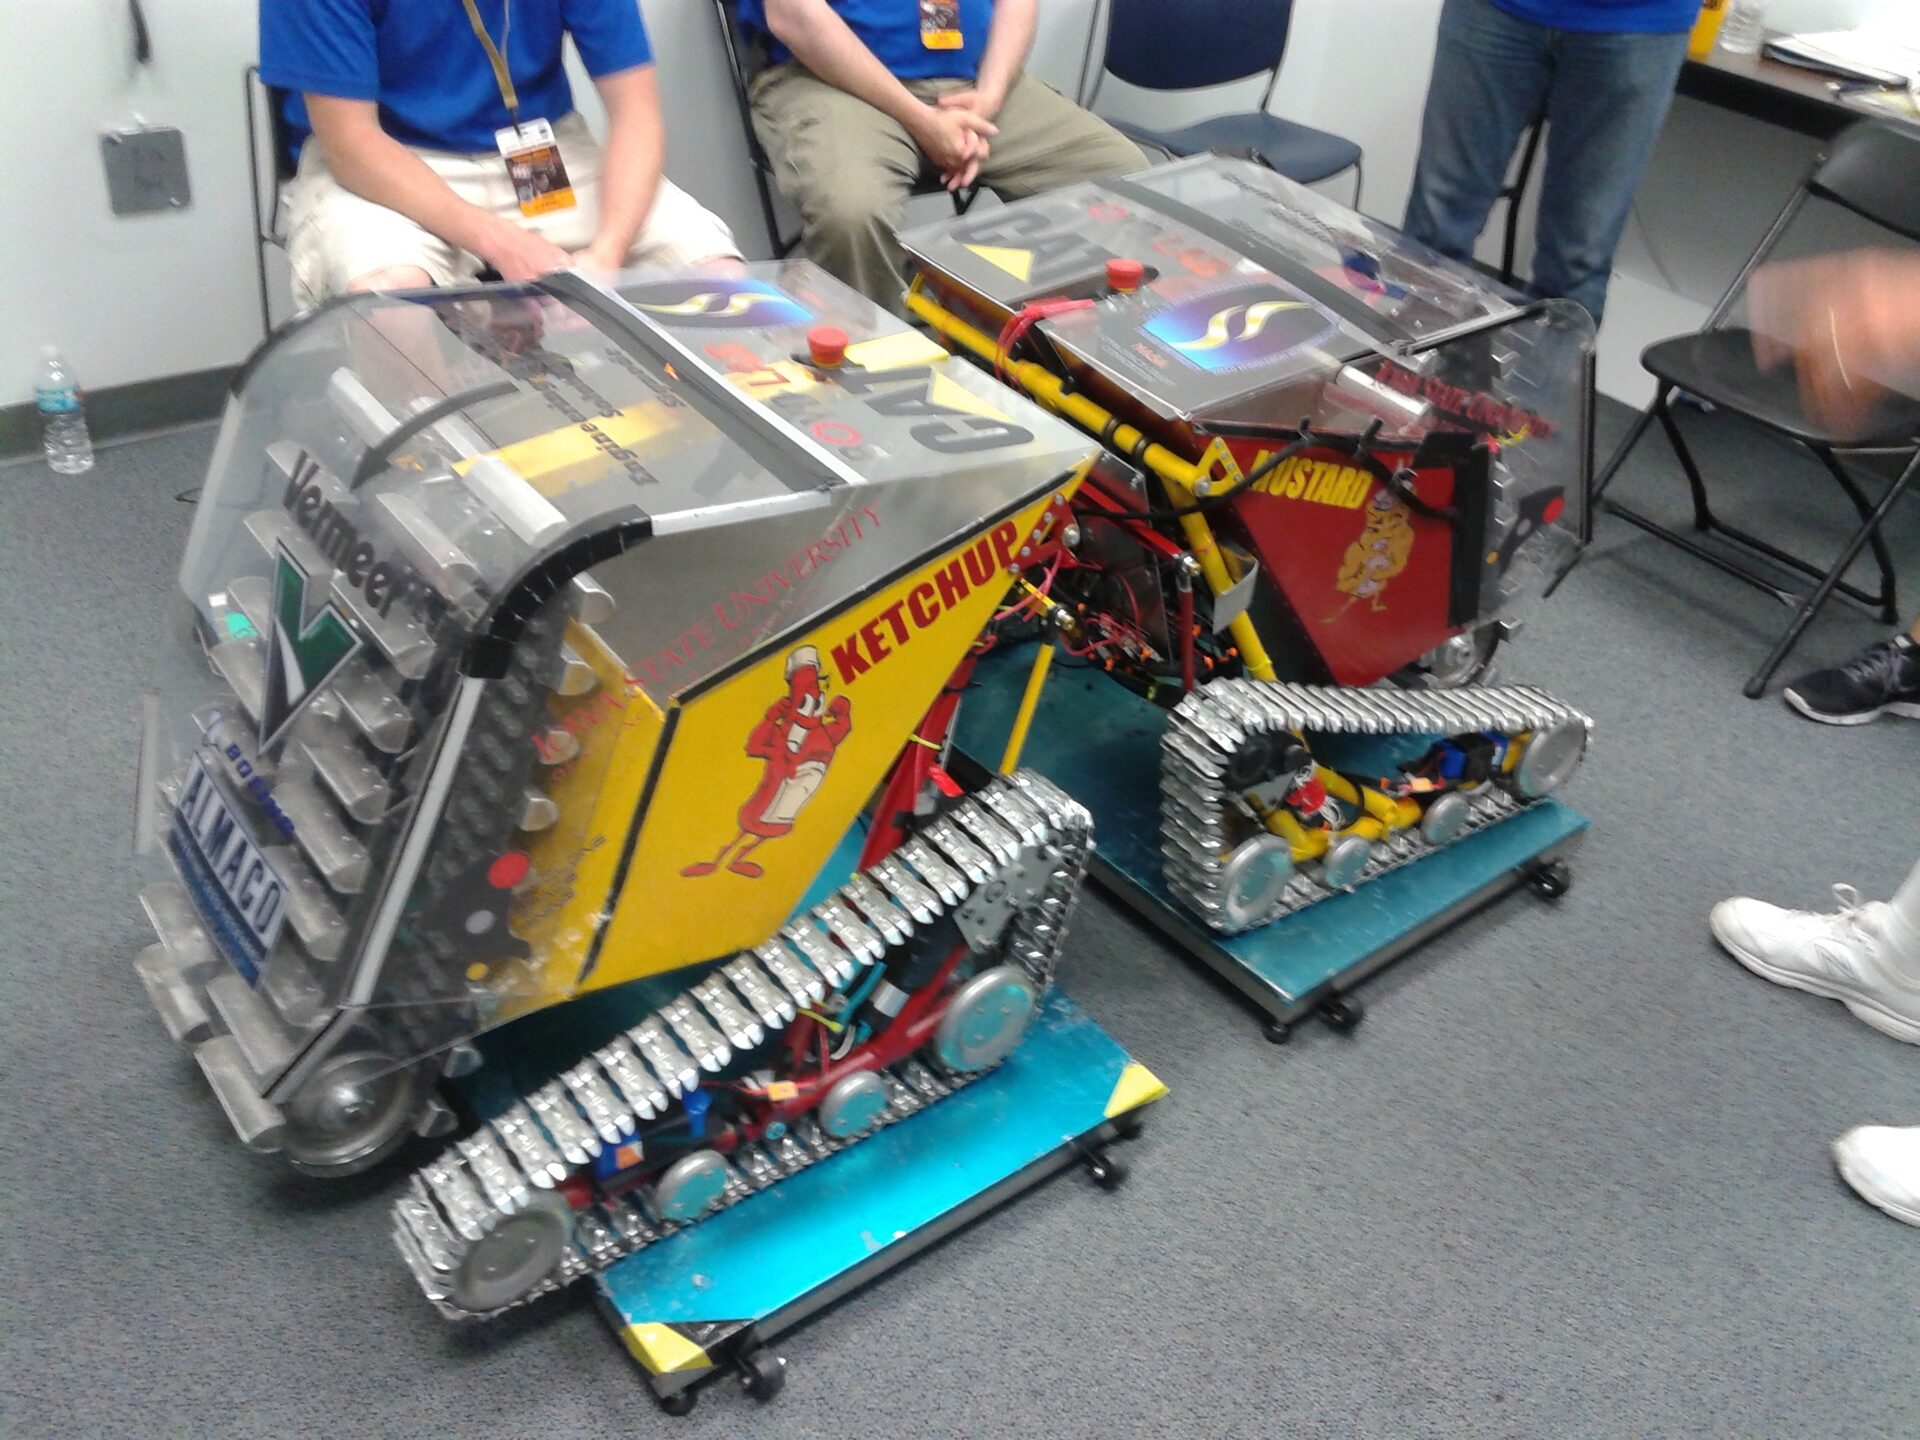 Ketchup and Mustard - the Iowa State NASA Robotic Mining Competition (RMC) robots from 2016